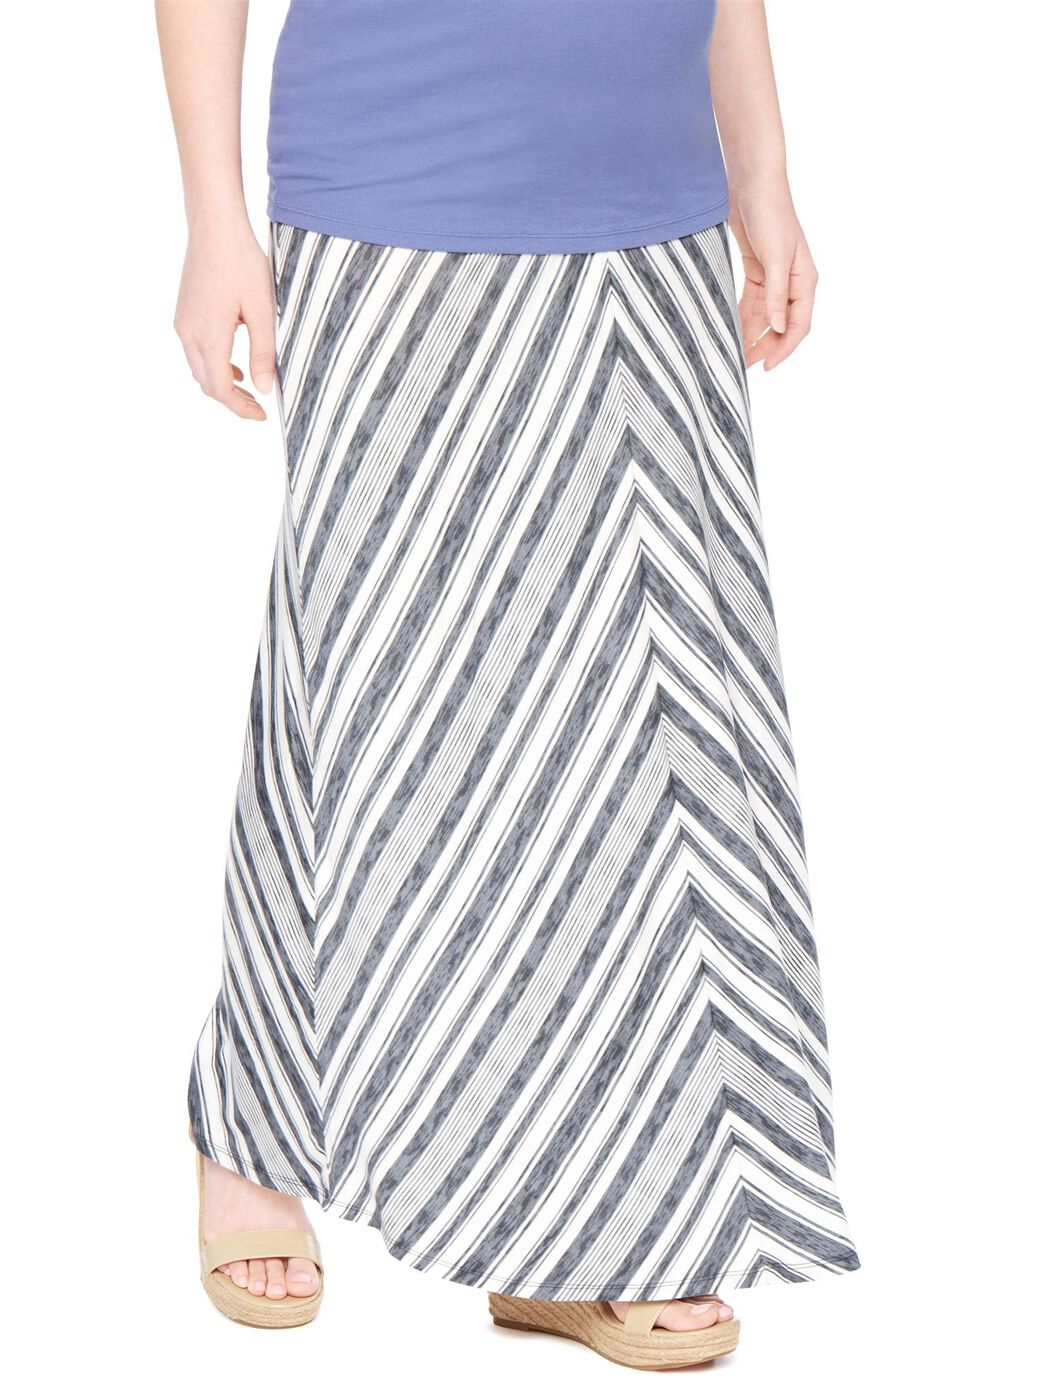 Fold Over Belly Maternity Maxi Skirt- Grey/White Stripe at Motherhood Maternity in Victor, NY | Tuggl